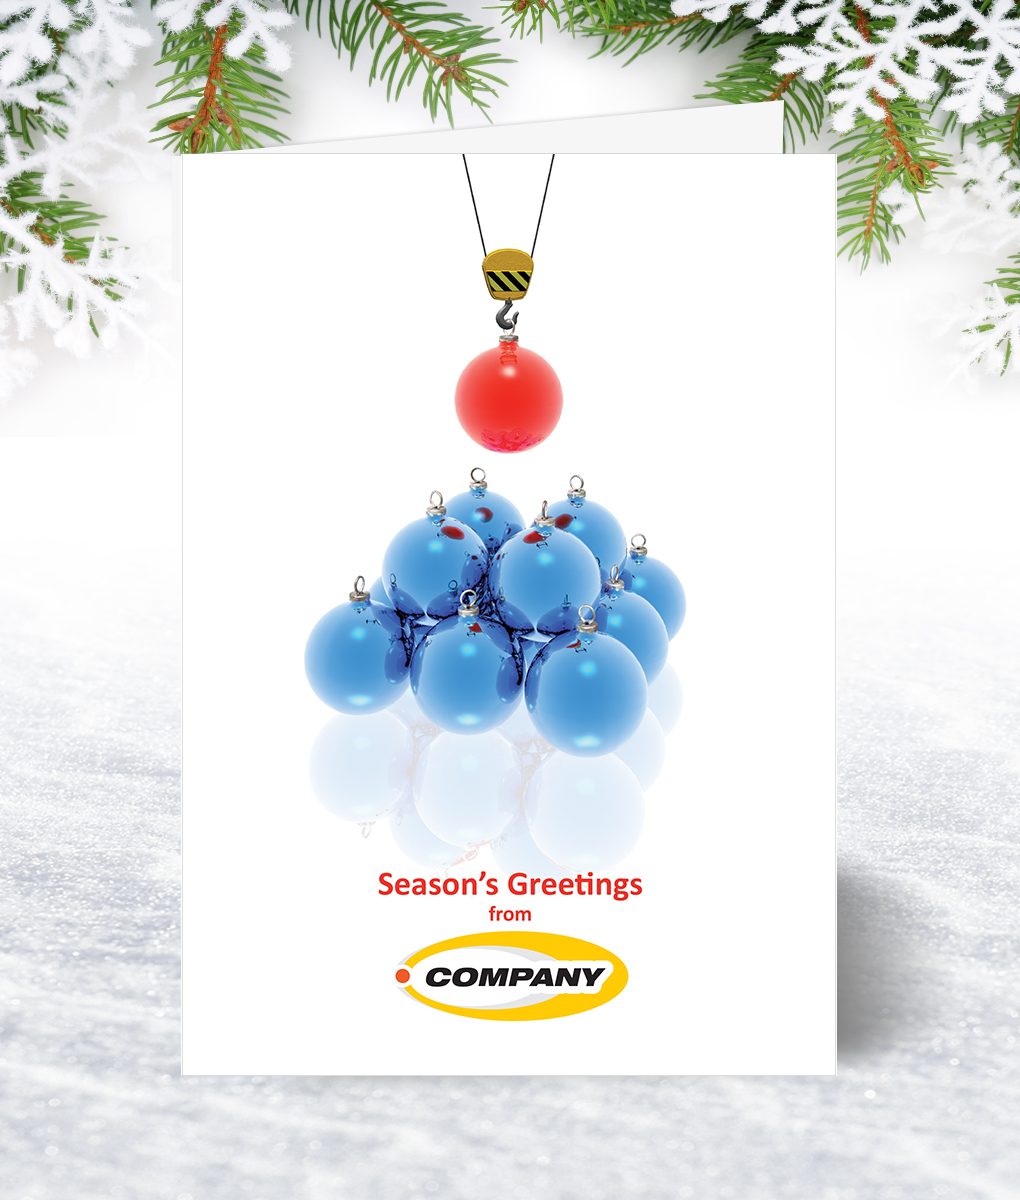 Bauble Construction Christmas Card Corporate Collection